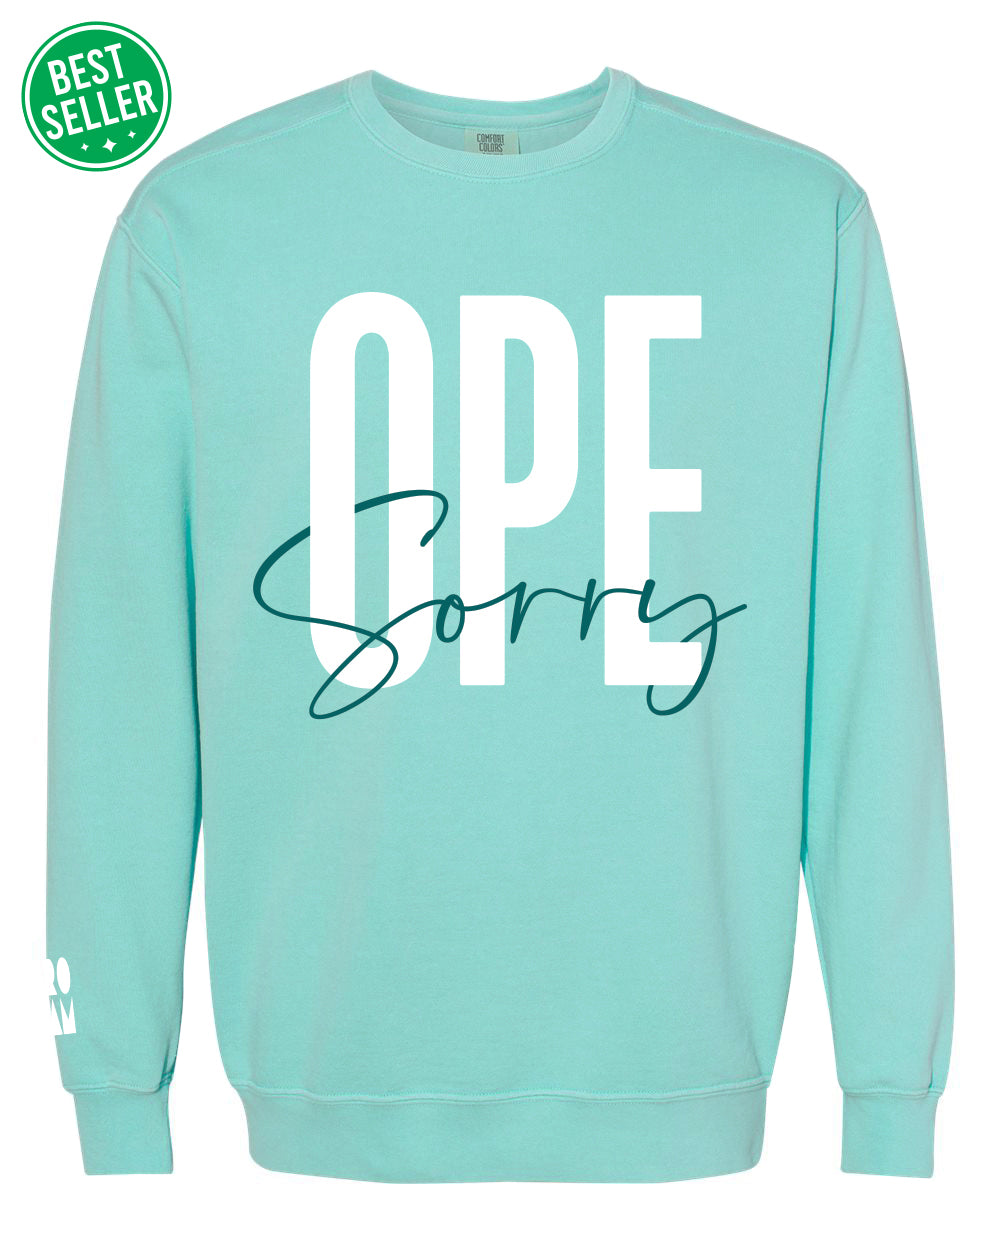 Ope Sorry Crew - Chalky Mint - Front - BS